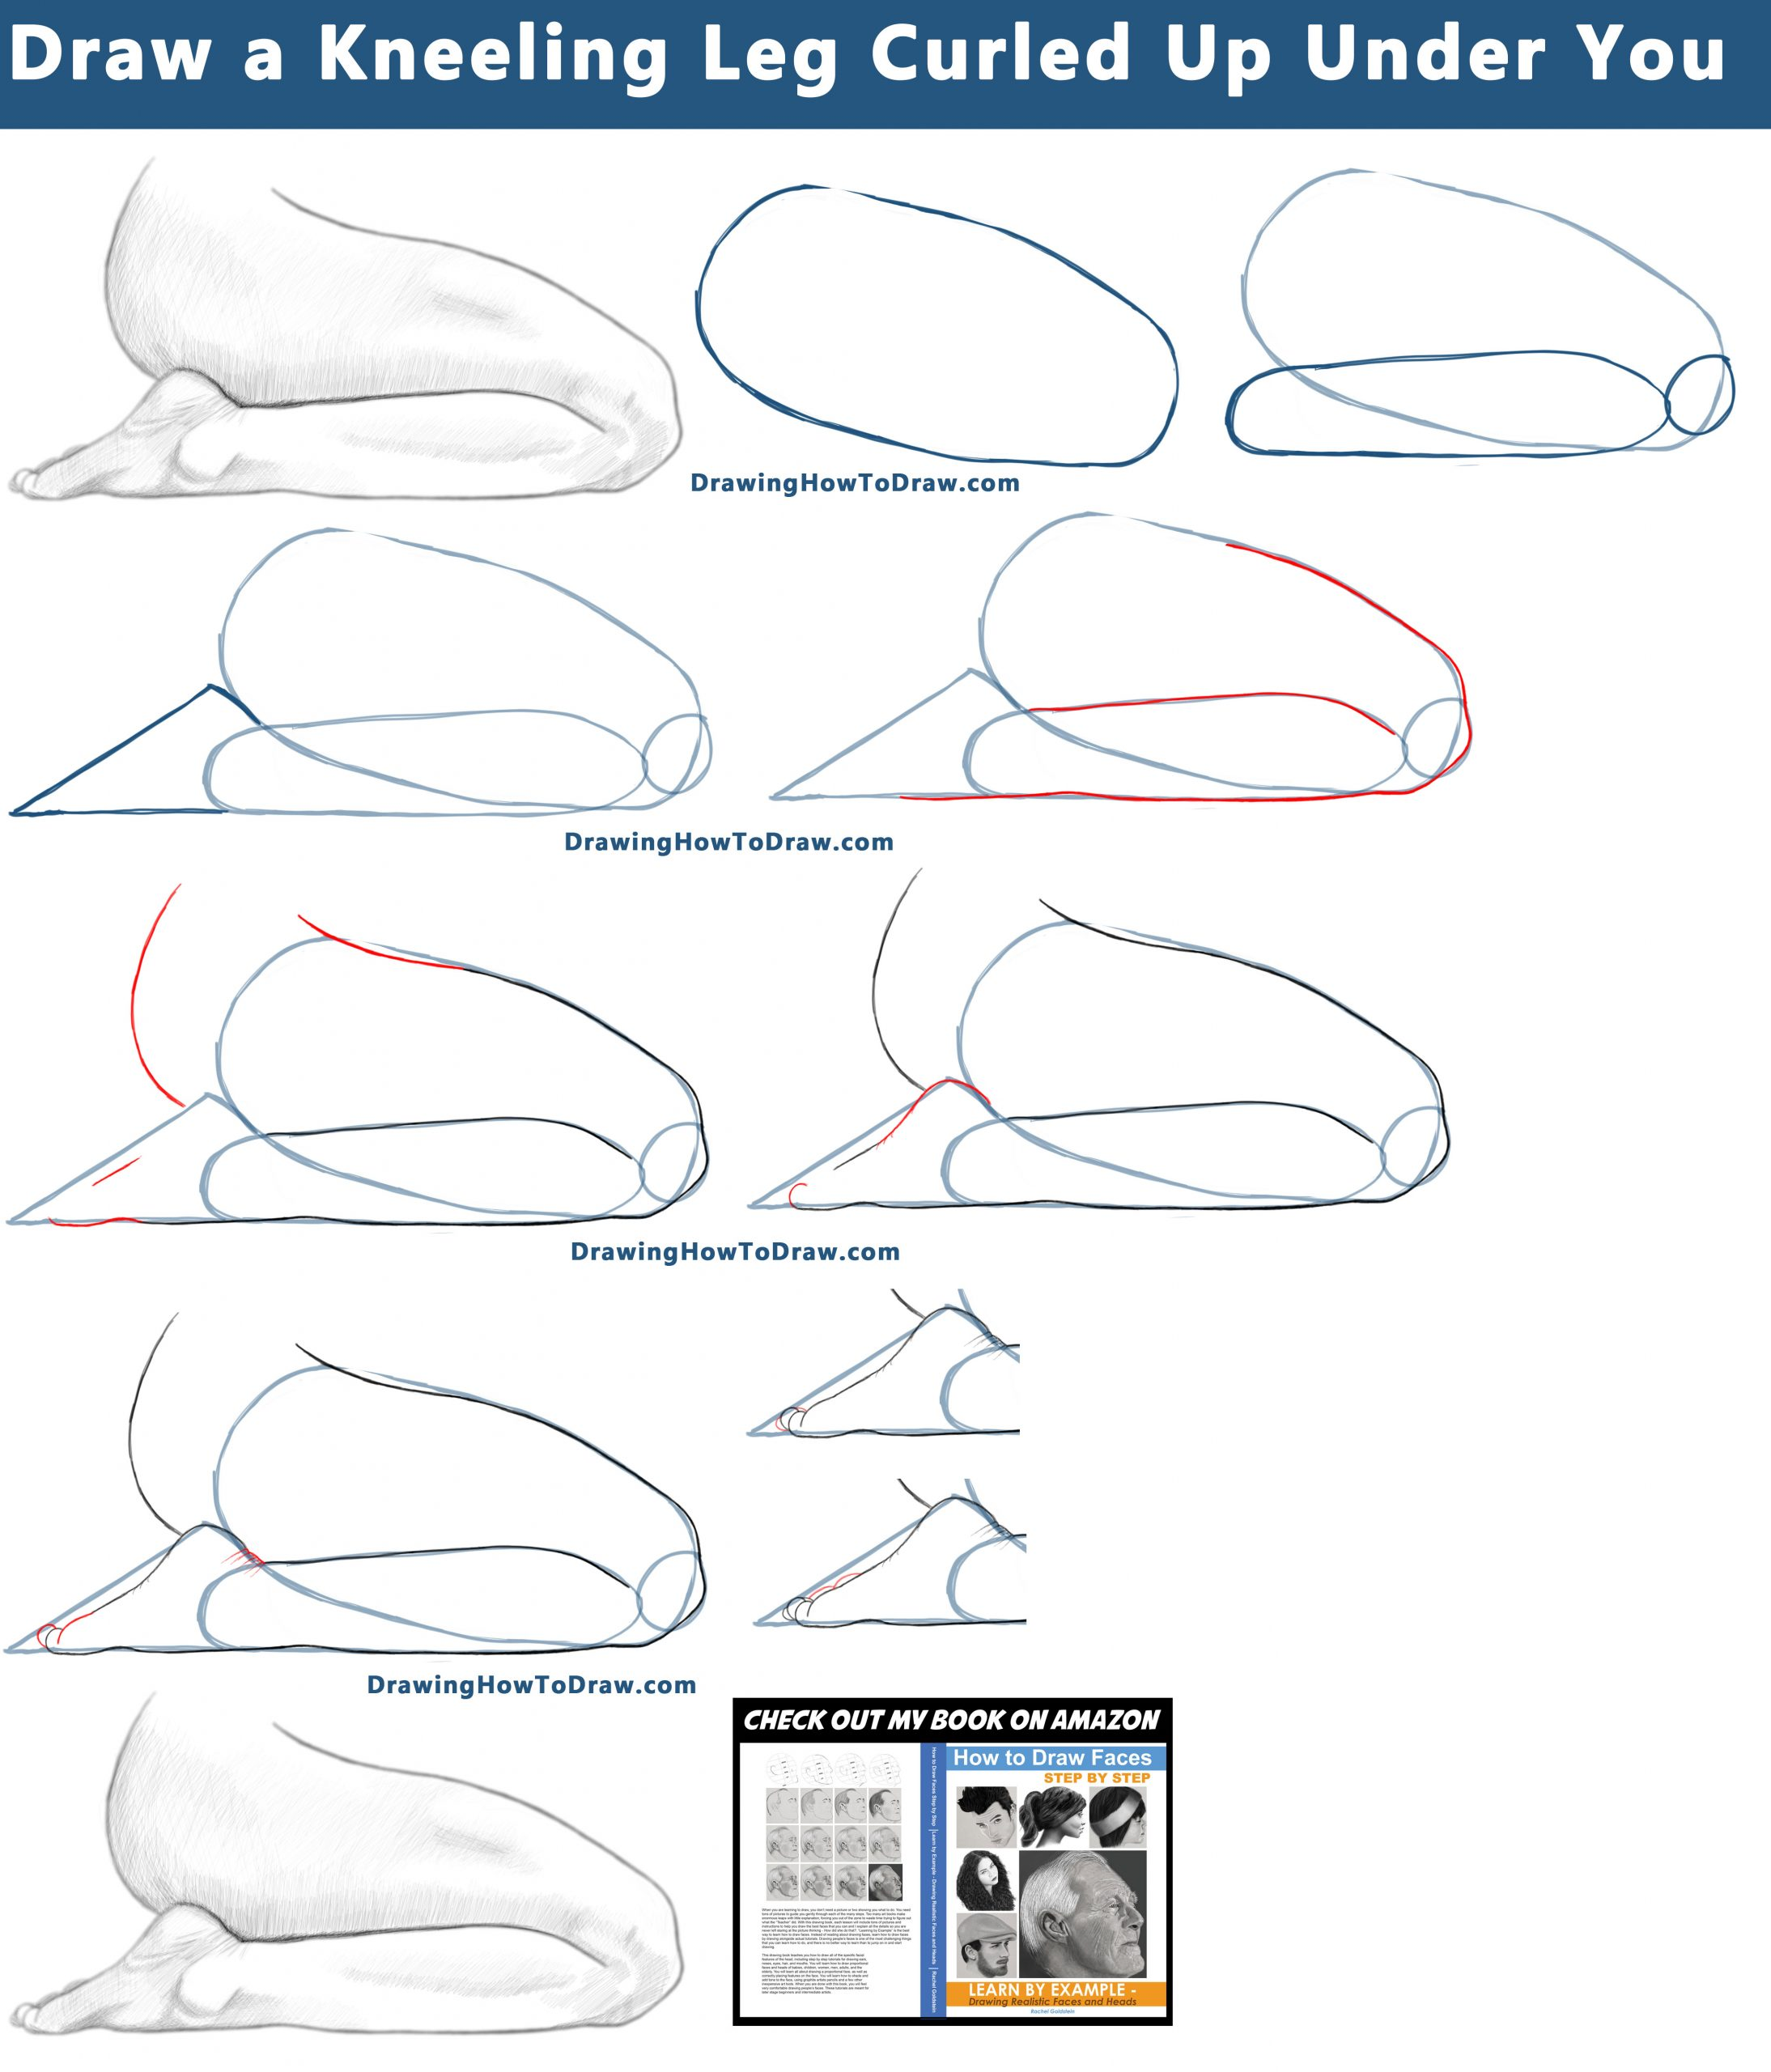 How to draw kneeling legs folded back behind you, sitting on your legs - easy step by step drawing tutorial